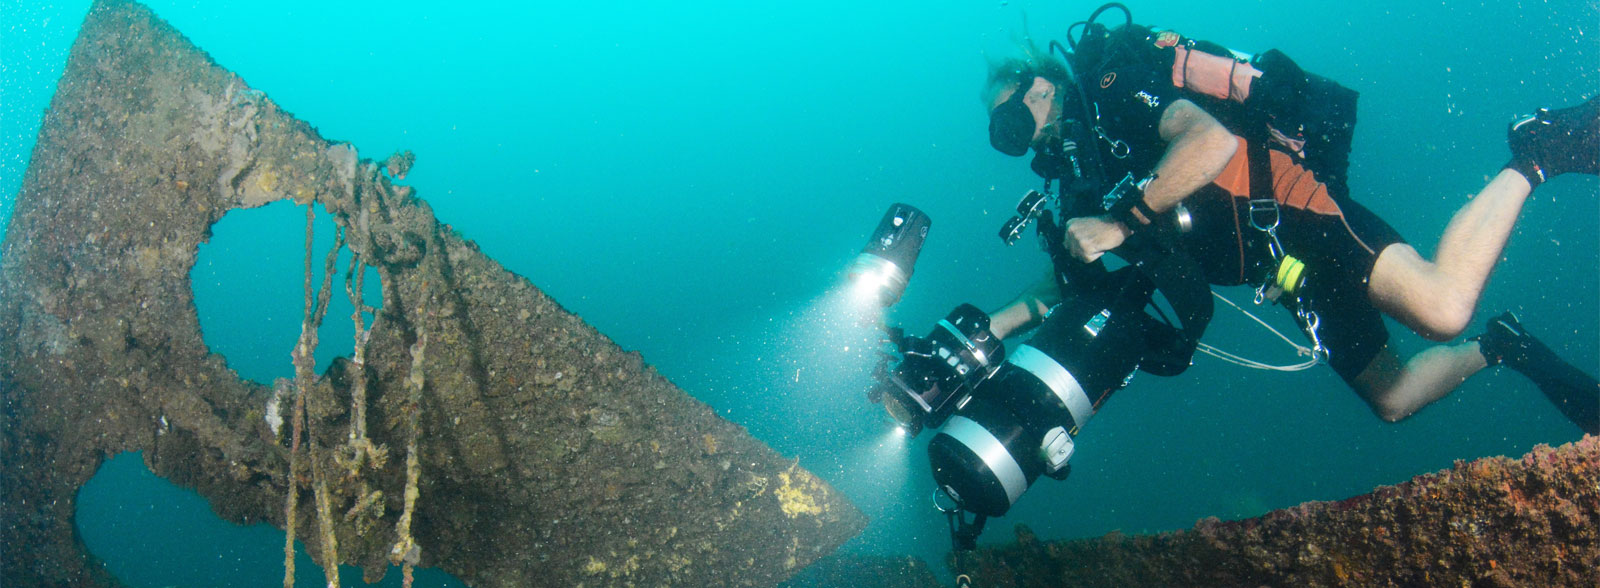 technical diving subic bay philippines